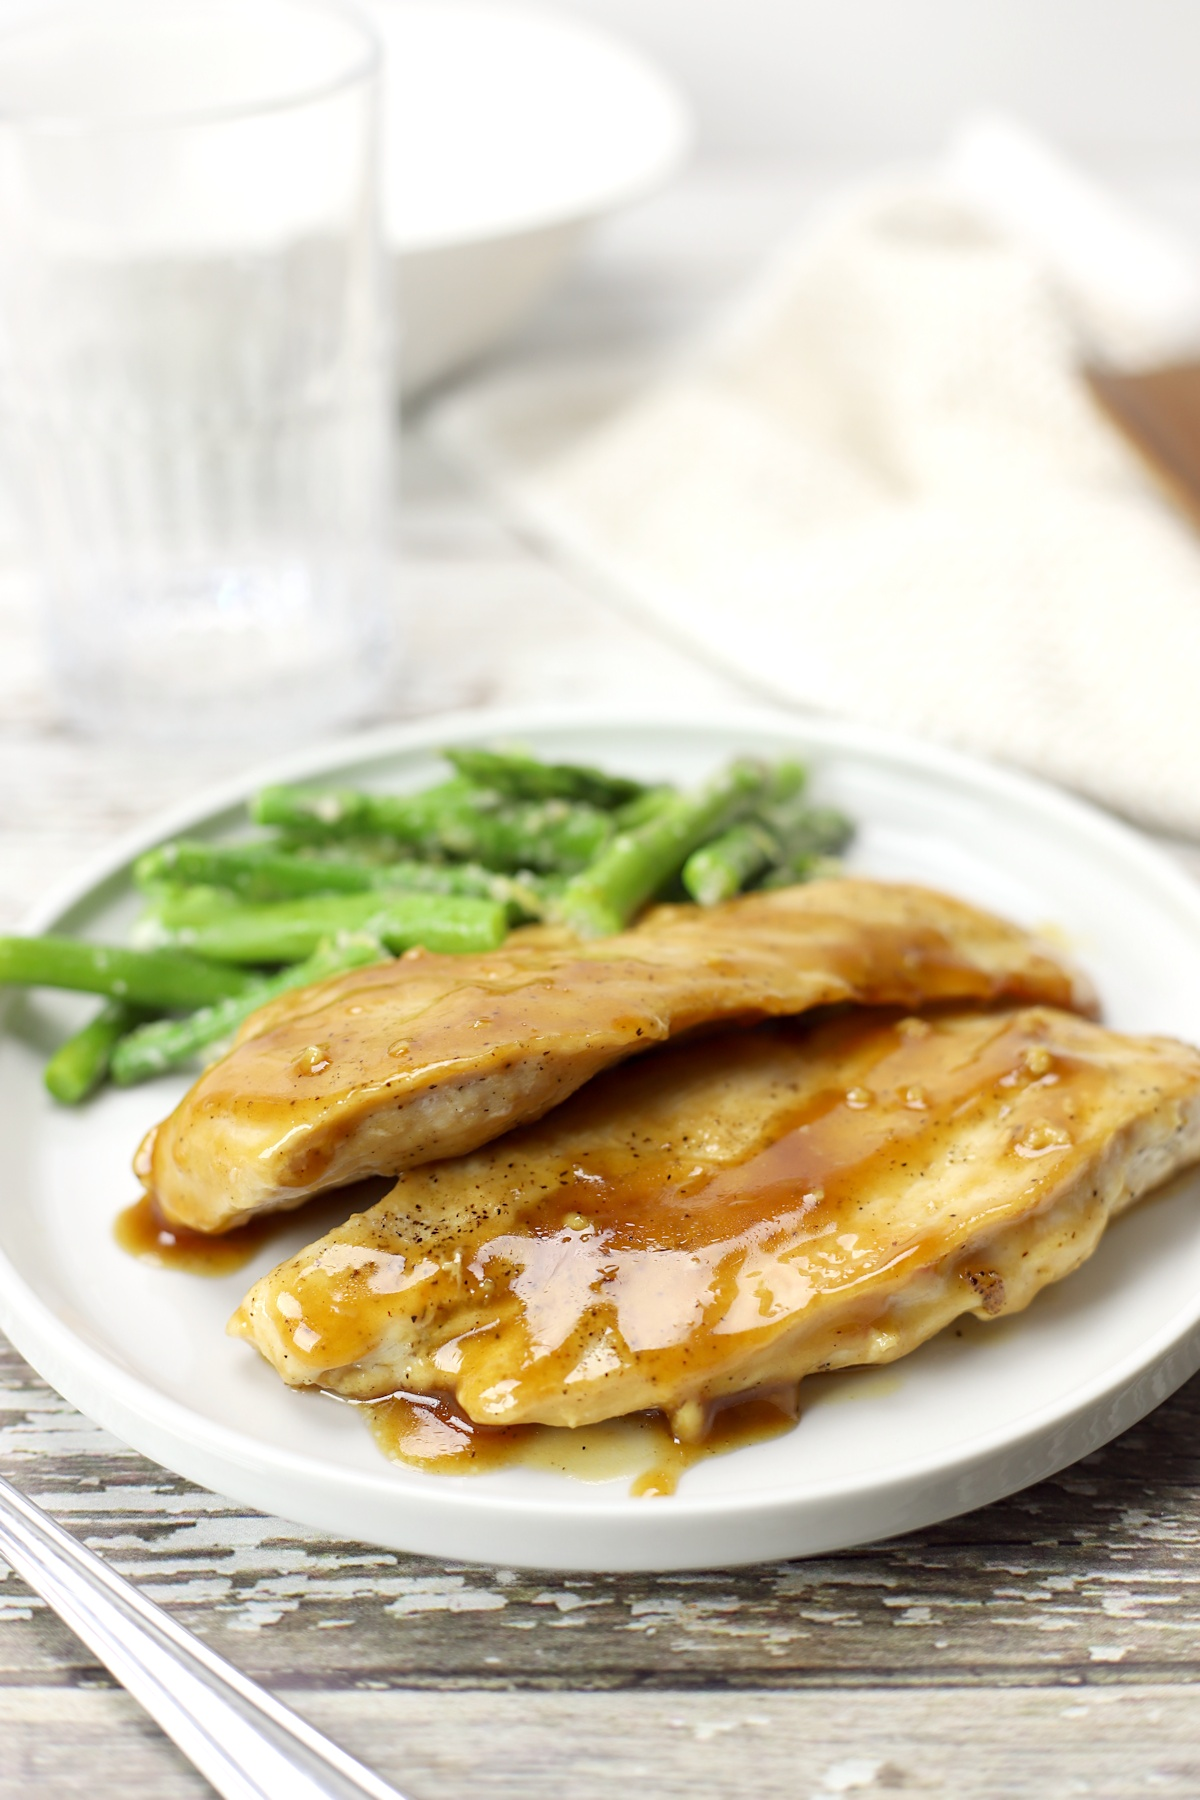 A plate of maple glazed chicken with asparagus.